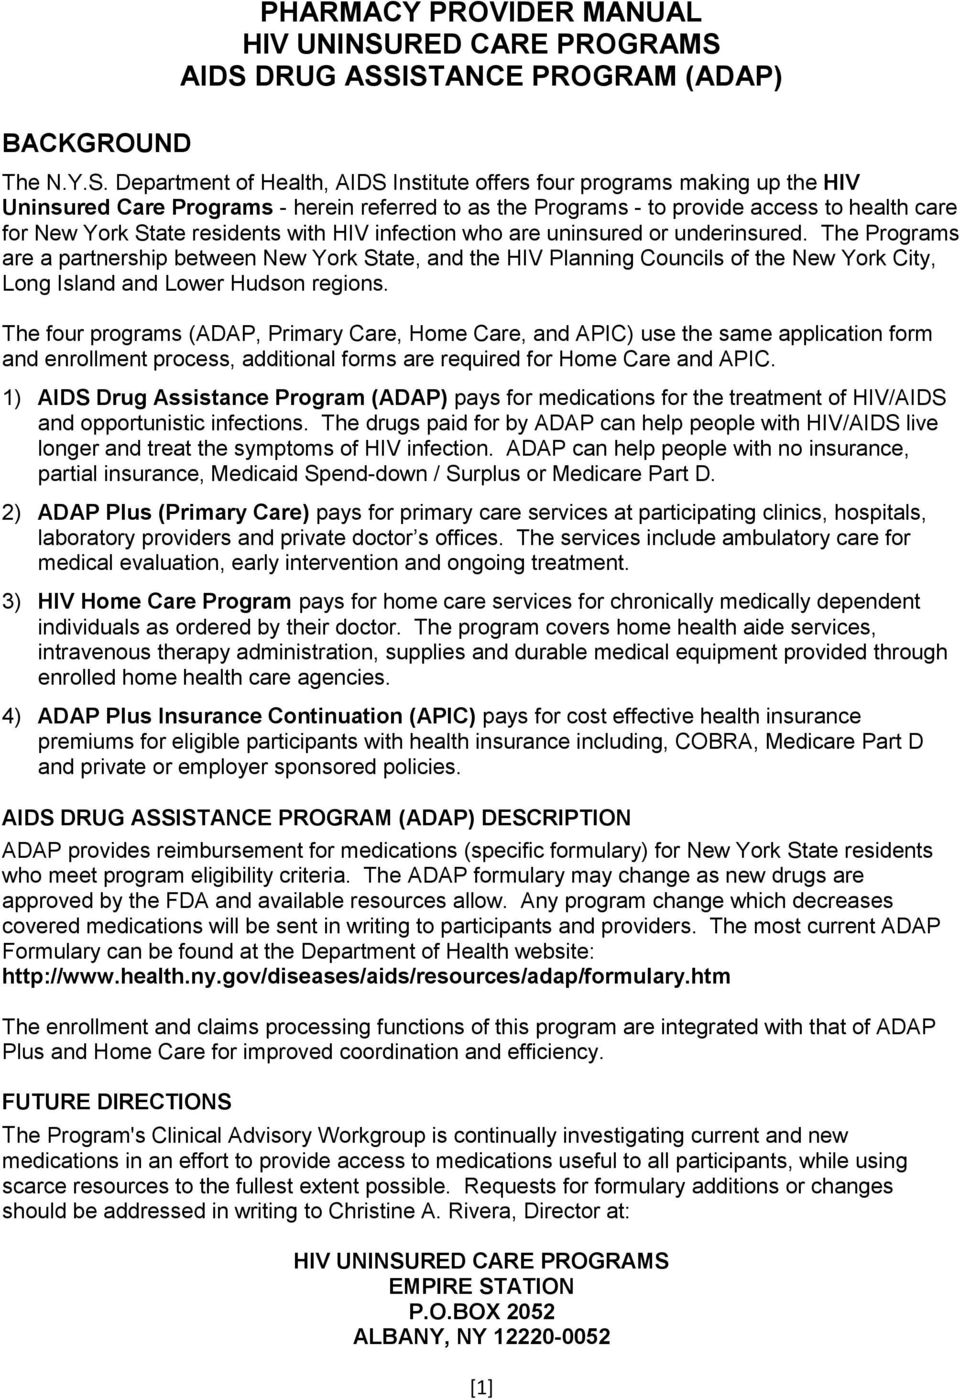 AIDS DRUG ASSISTANCE PROGRAM (ADAP) BACKGROUND The N.Y.S. Department of  Health, AIDS Institute